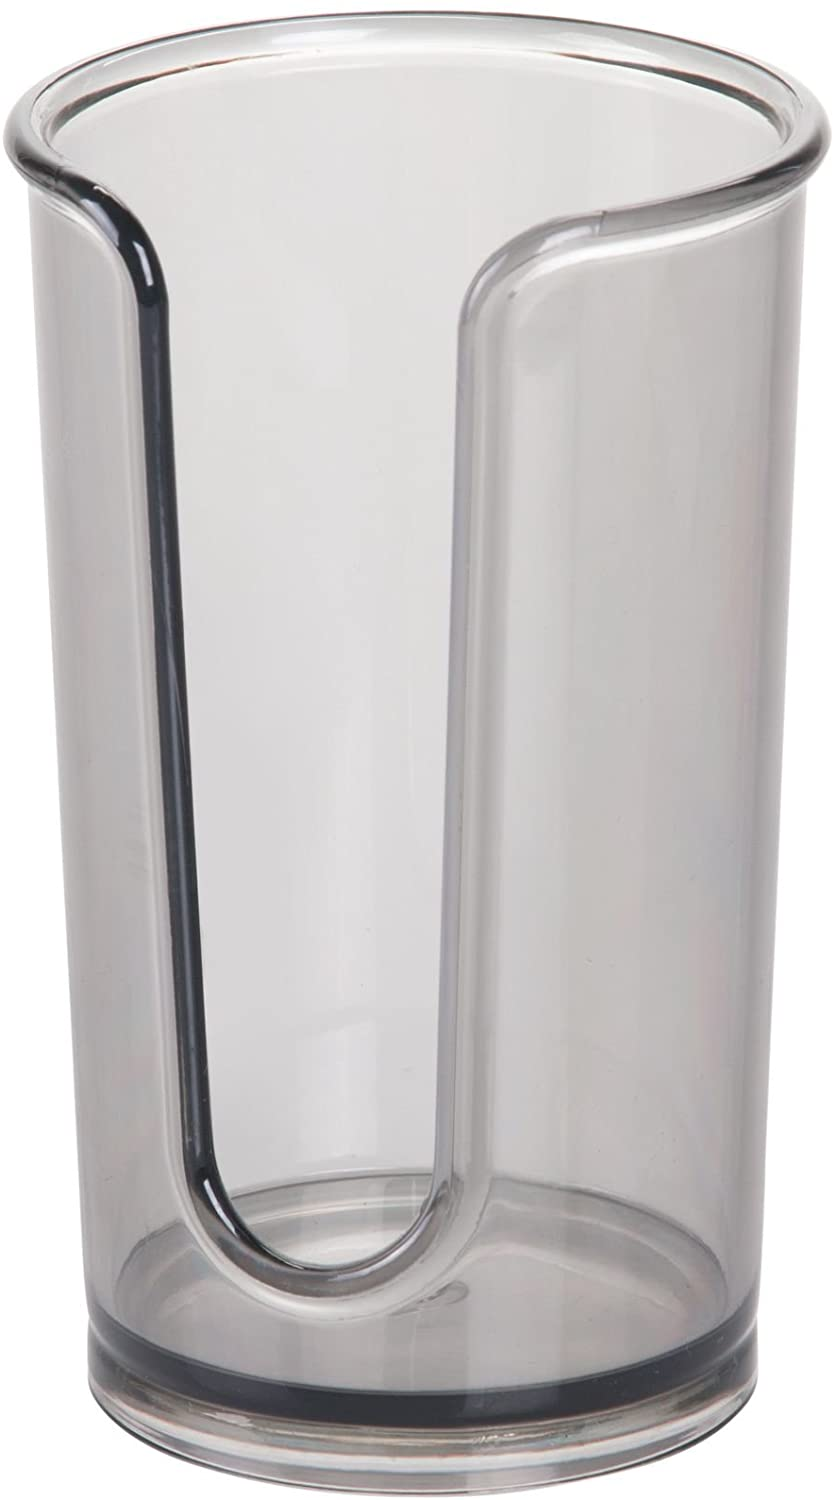 iDesign Clarity Sale Special Price Great interest Disposable Dispenser Cup Smoke Holder